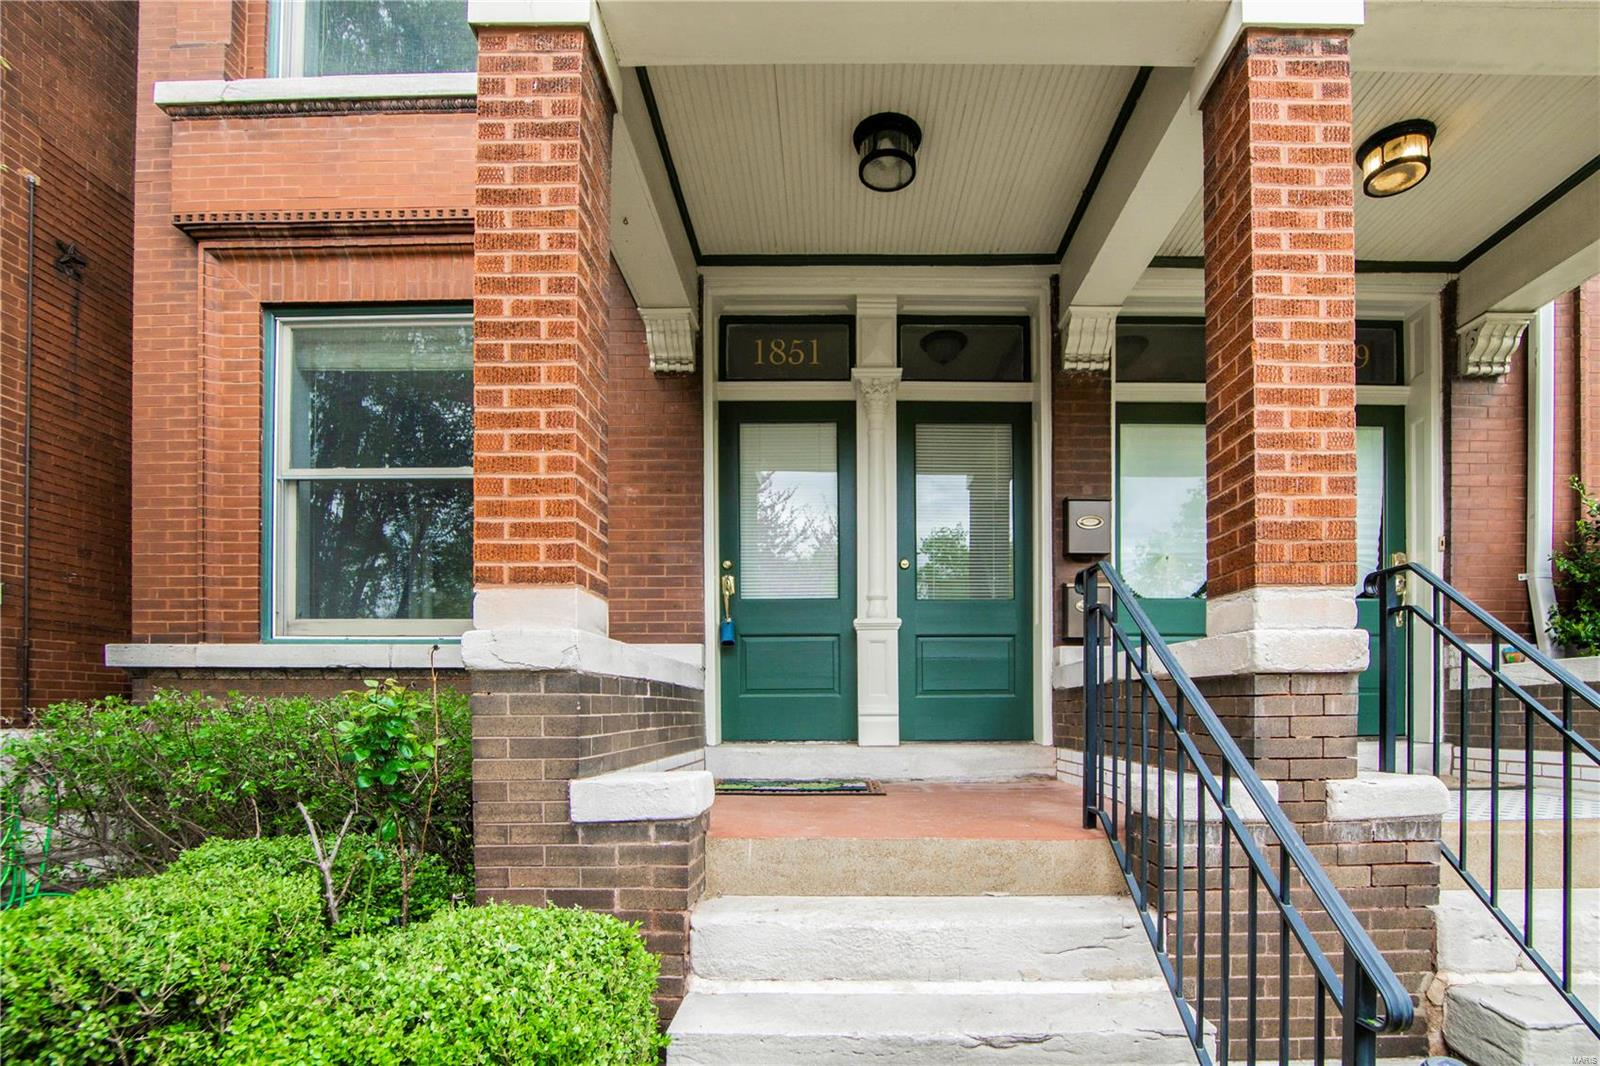 1851 Russell Boulevard, St Louis, MO 63104